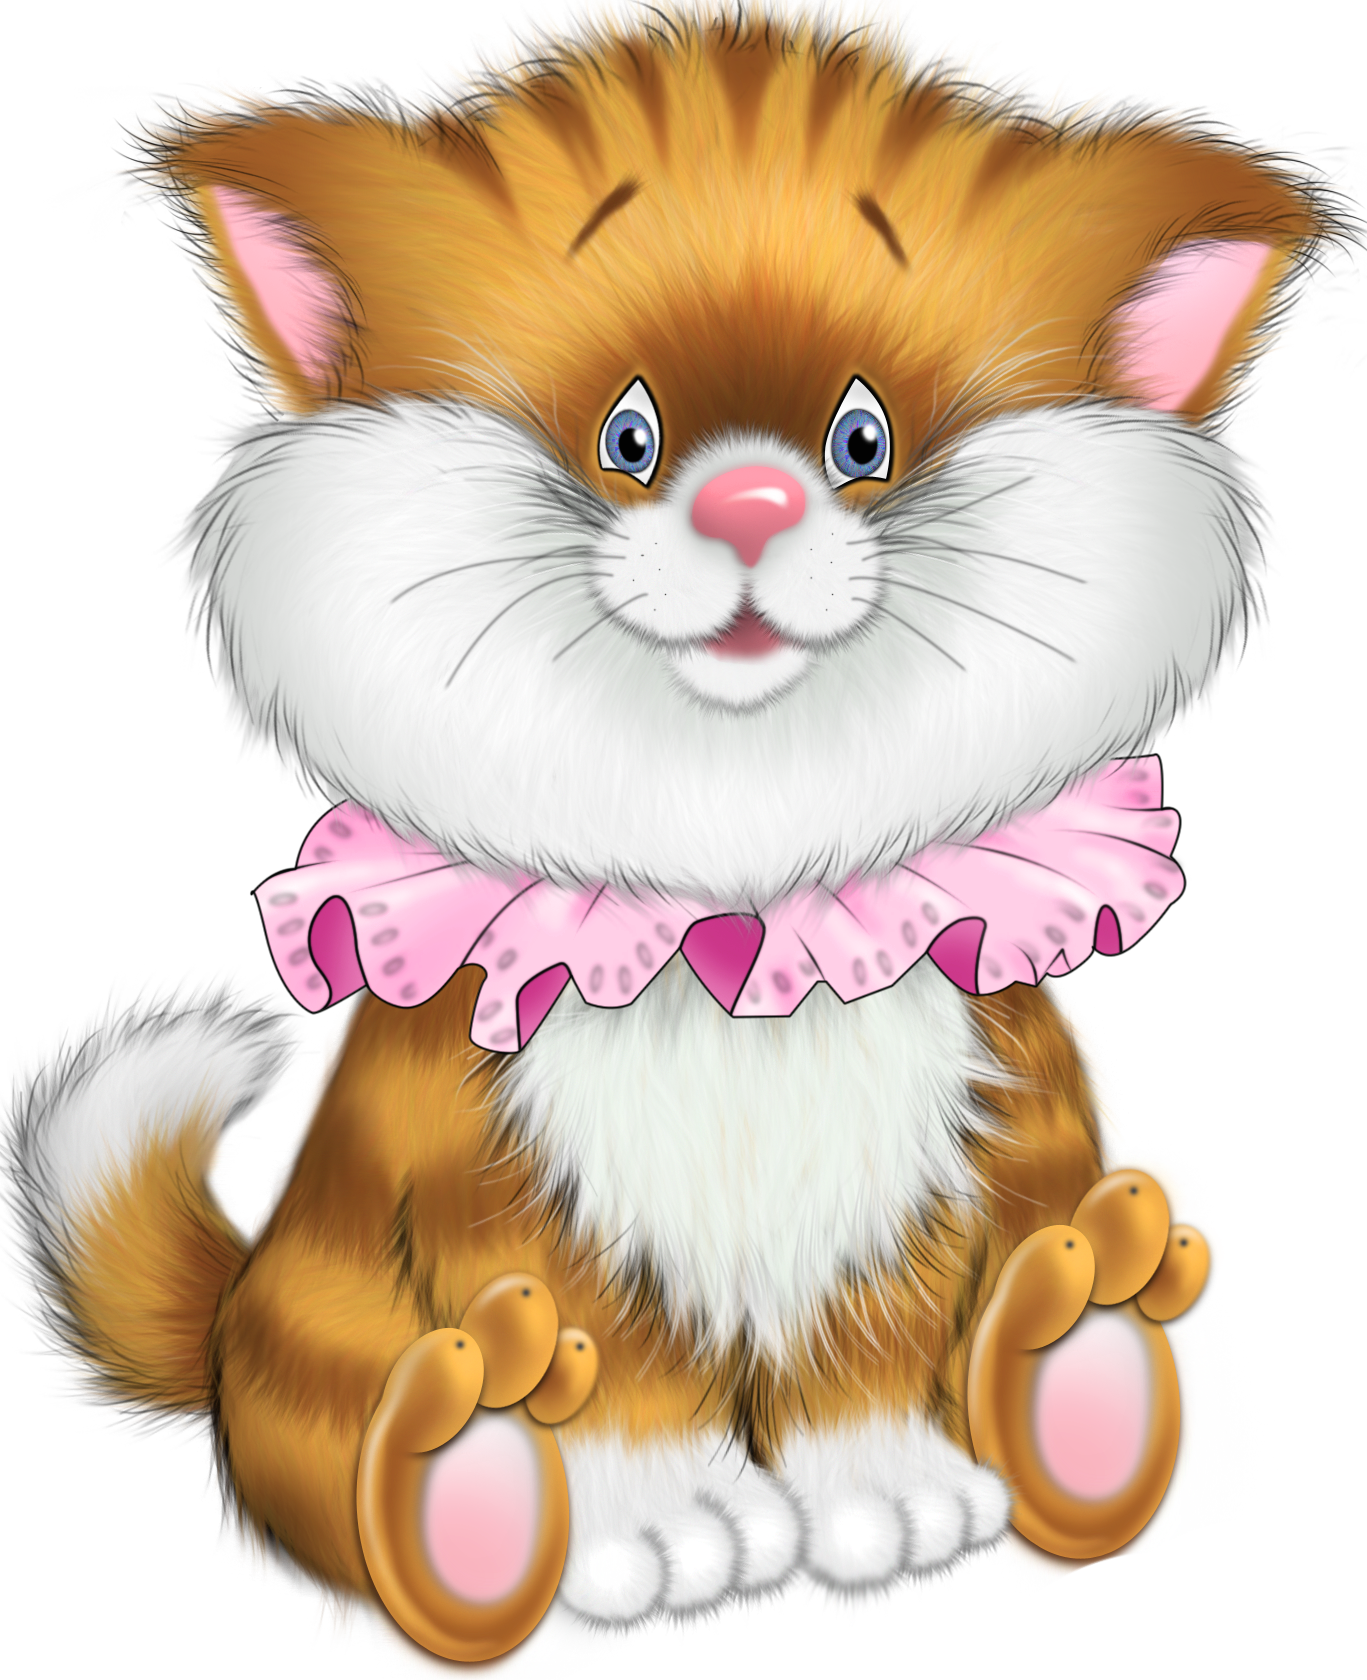 Thanksgiving kitten clipart picture Kitten cat miscellaneous clipart on kitty cats clip art and image 2 ... picture